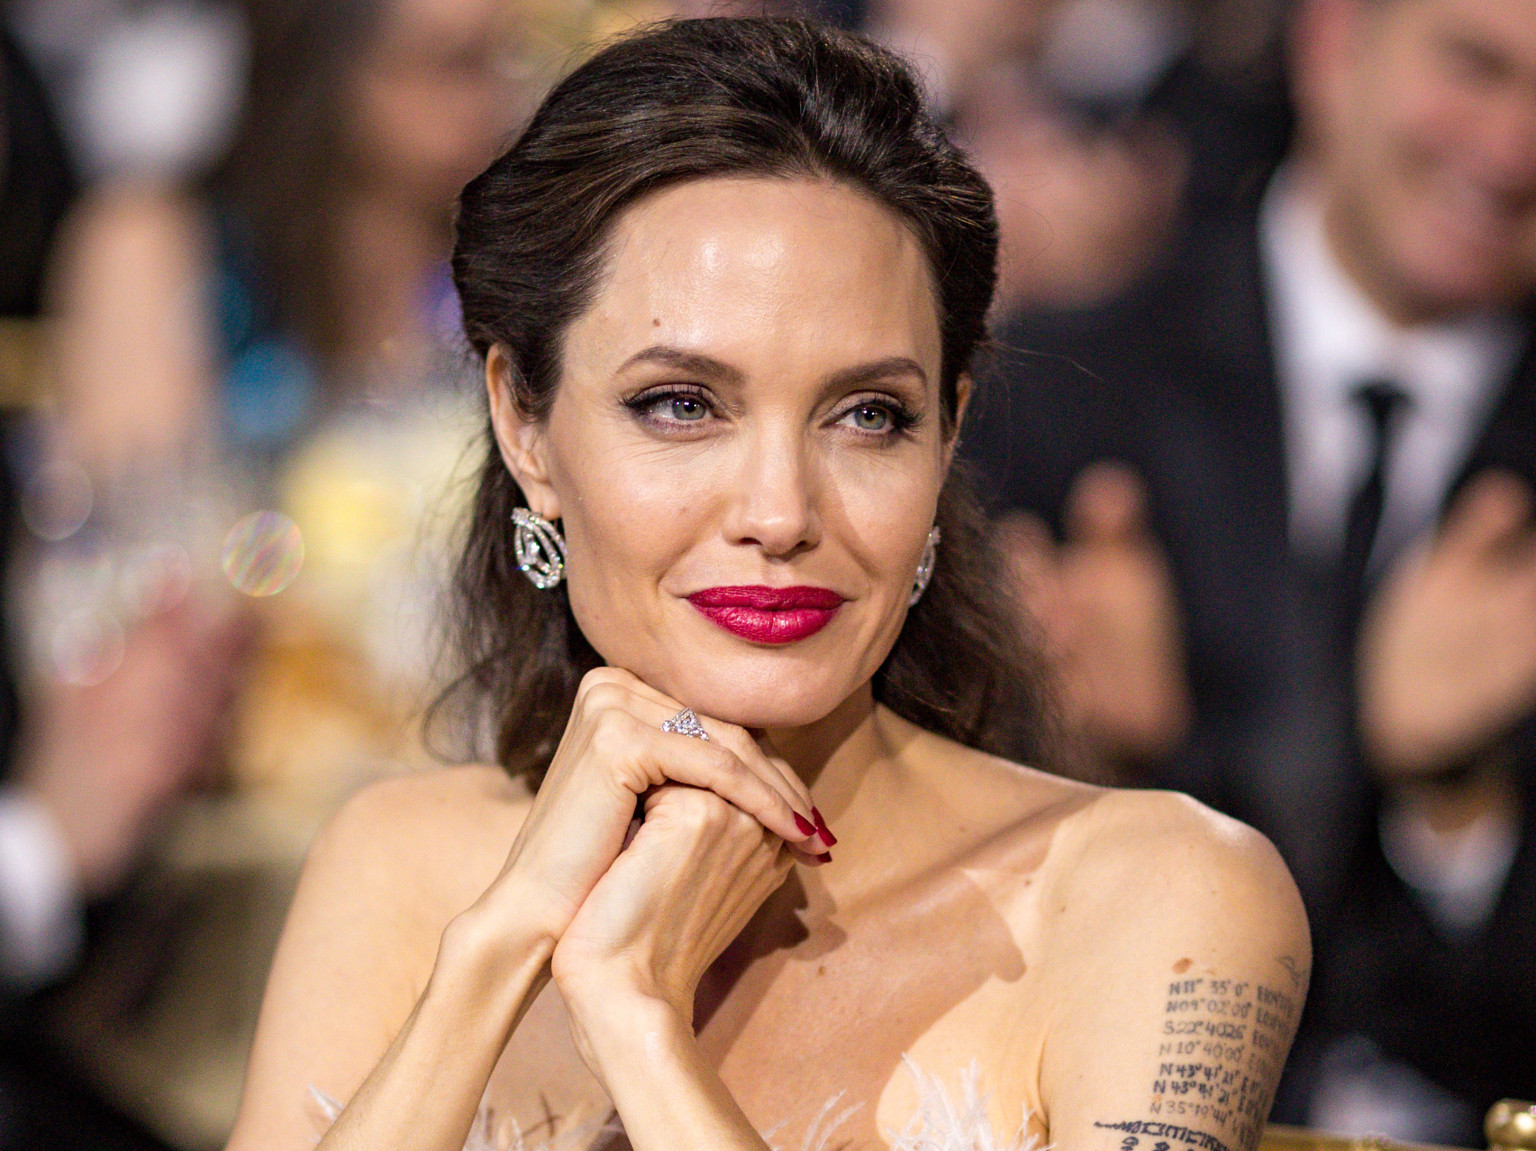 Top 15 Angelina Jolie Movies That Are A Must Watch!